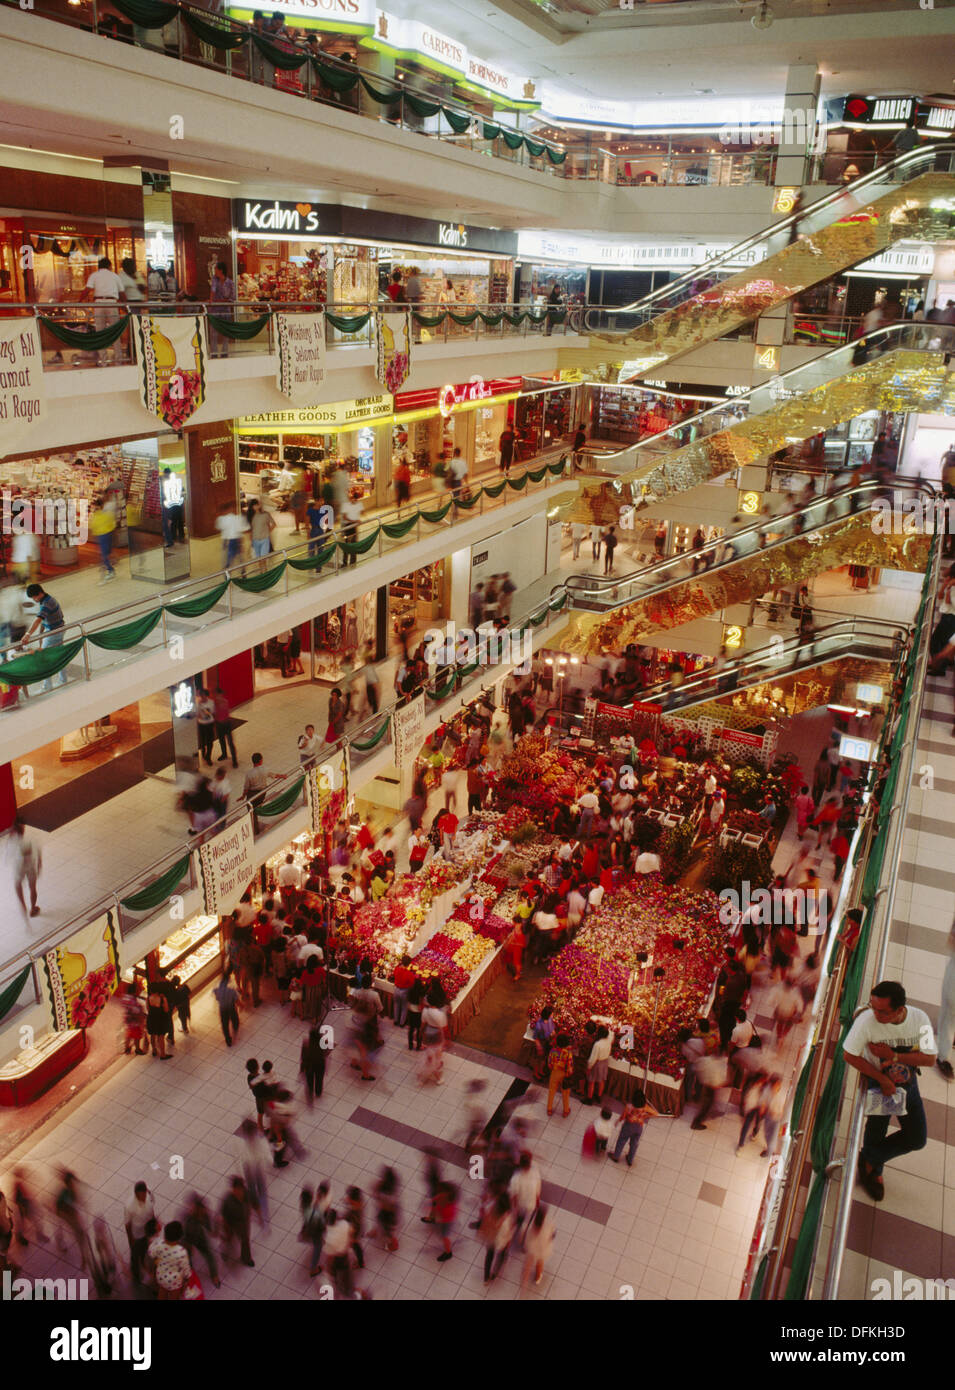 The Centrepoint shopping mall in Orchard Road, Singapore - Stock Image